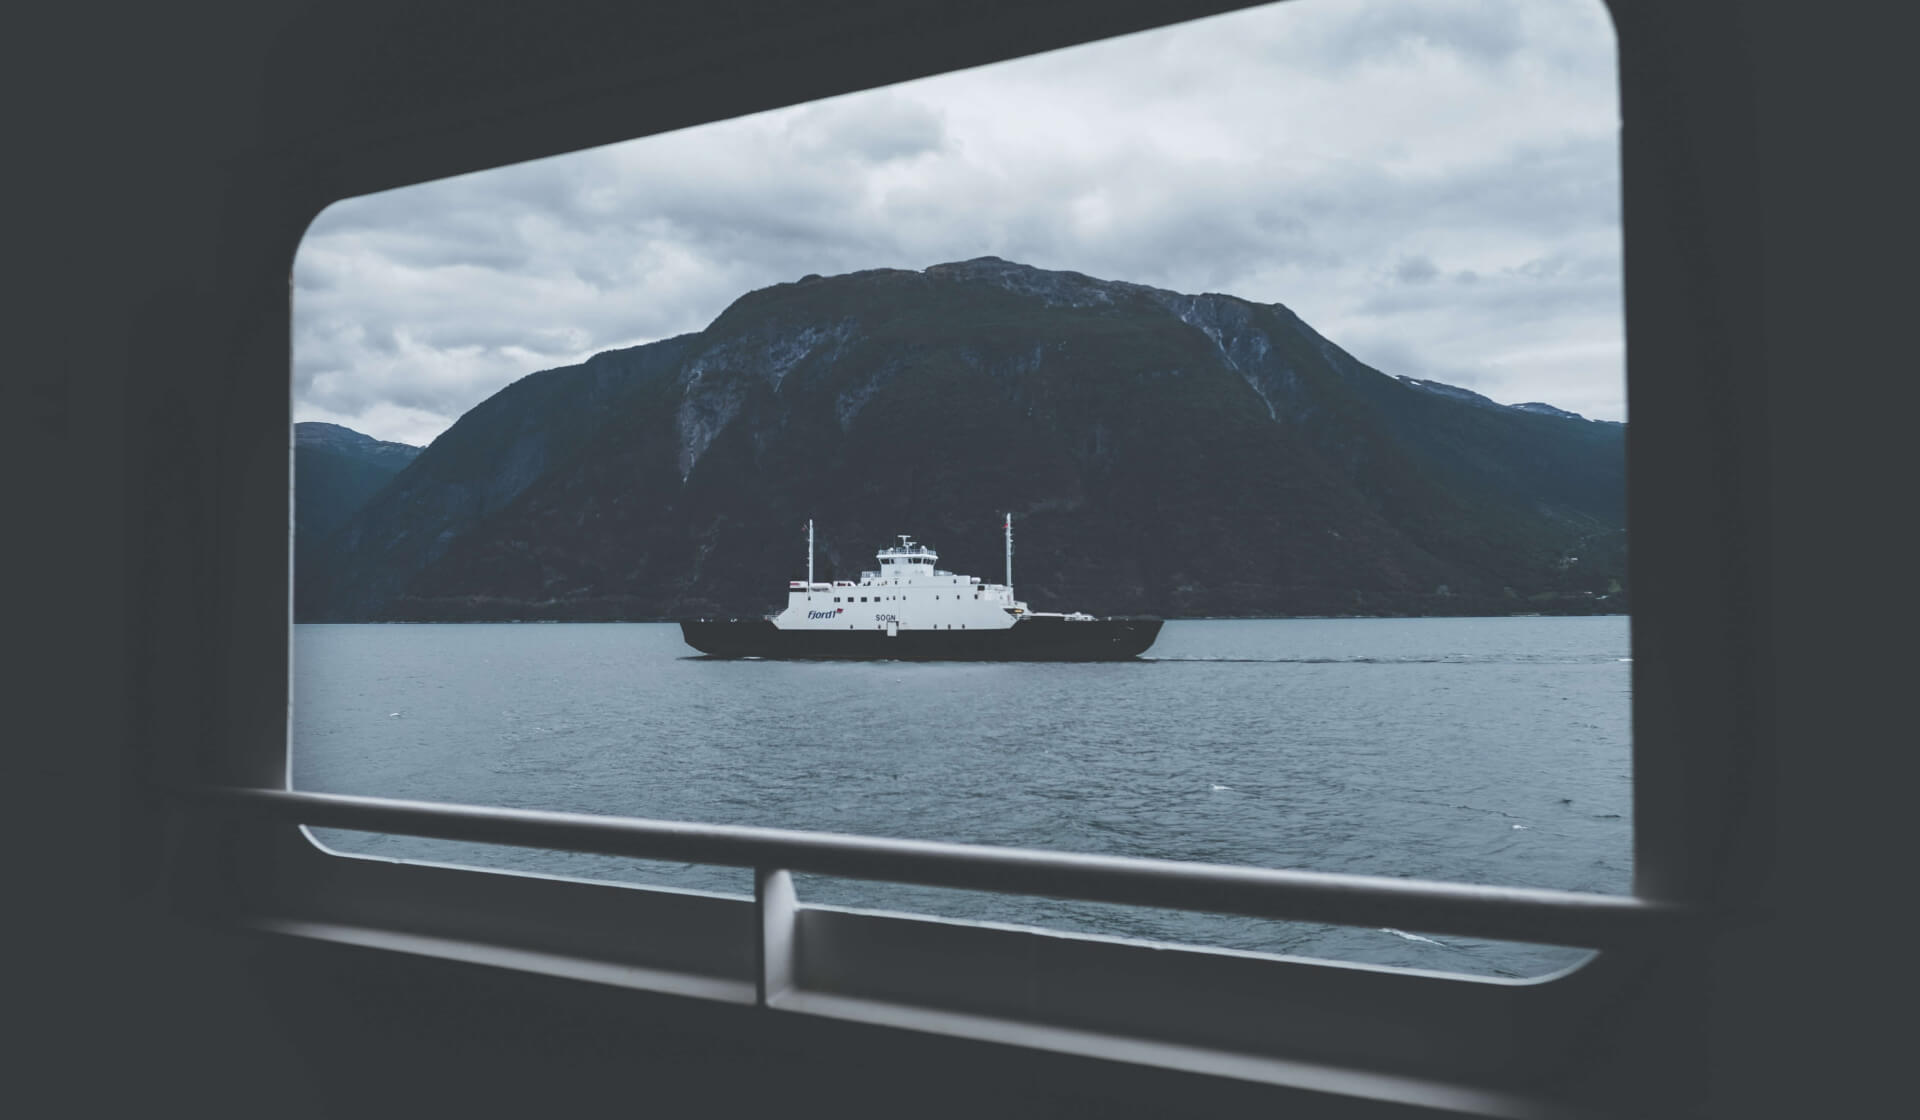 View from a window of a boat passing in front of a mountain over a lake